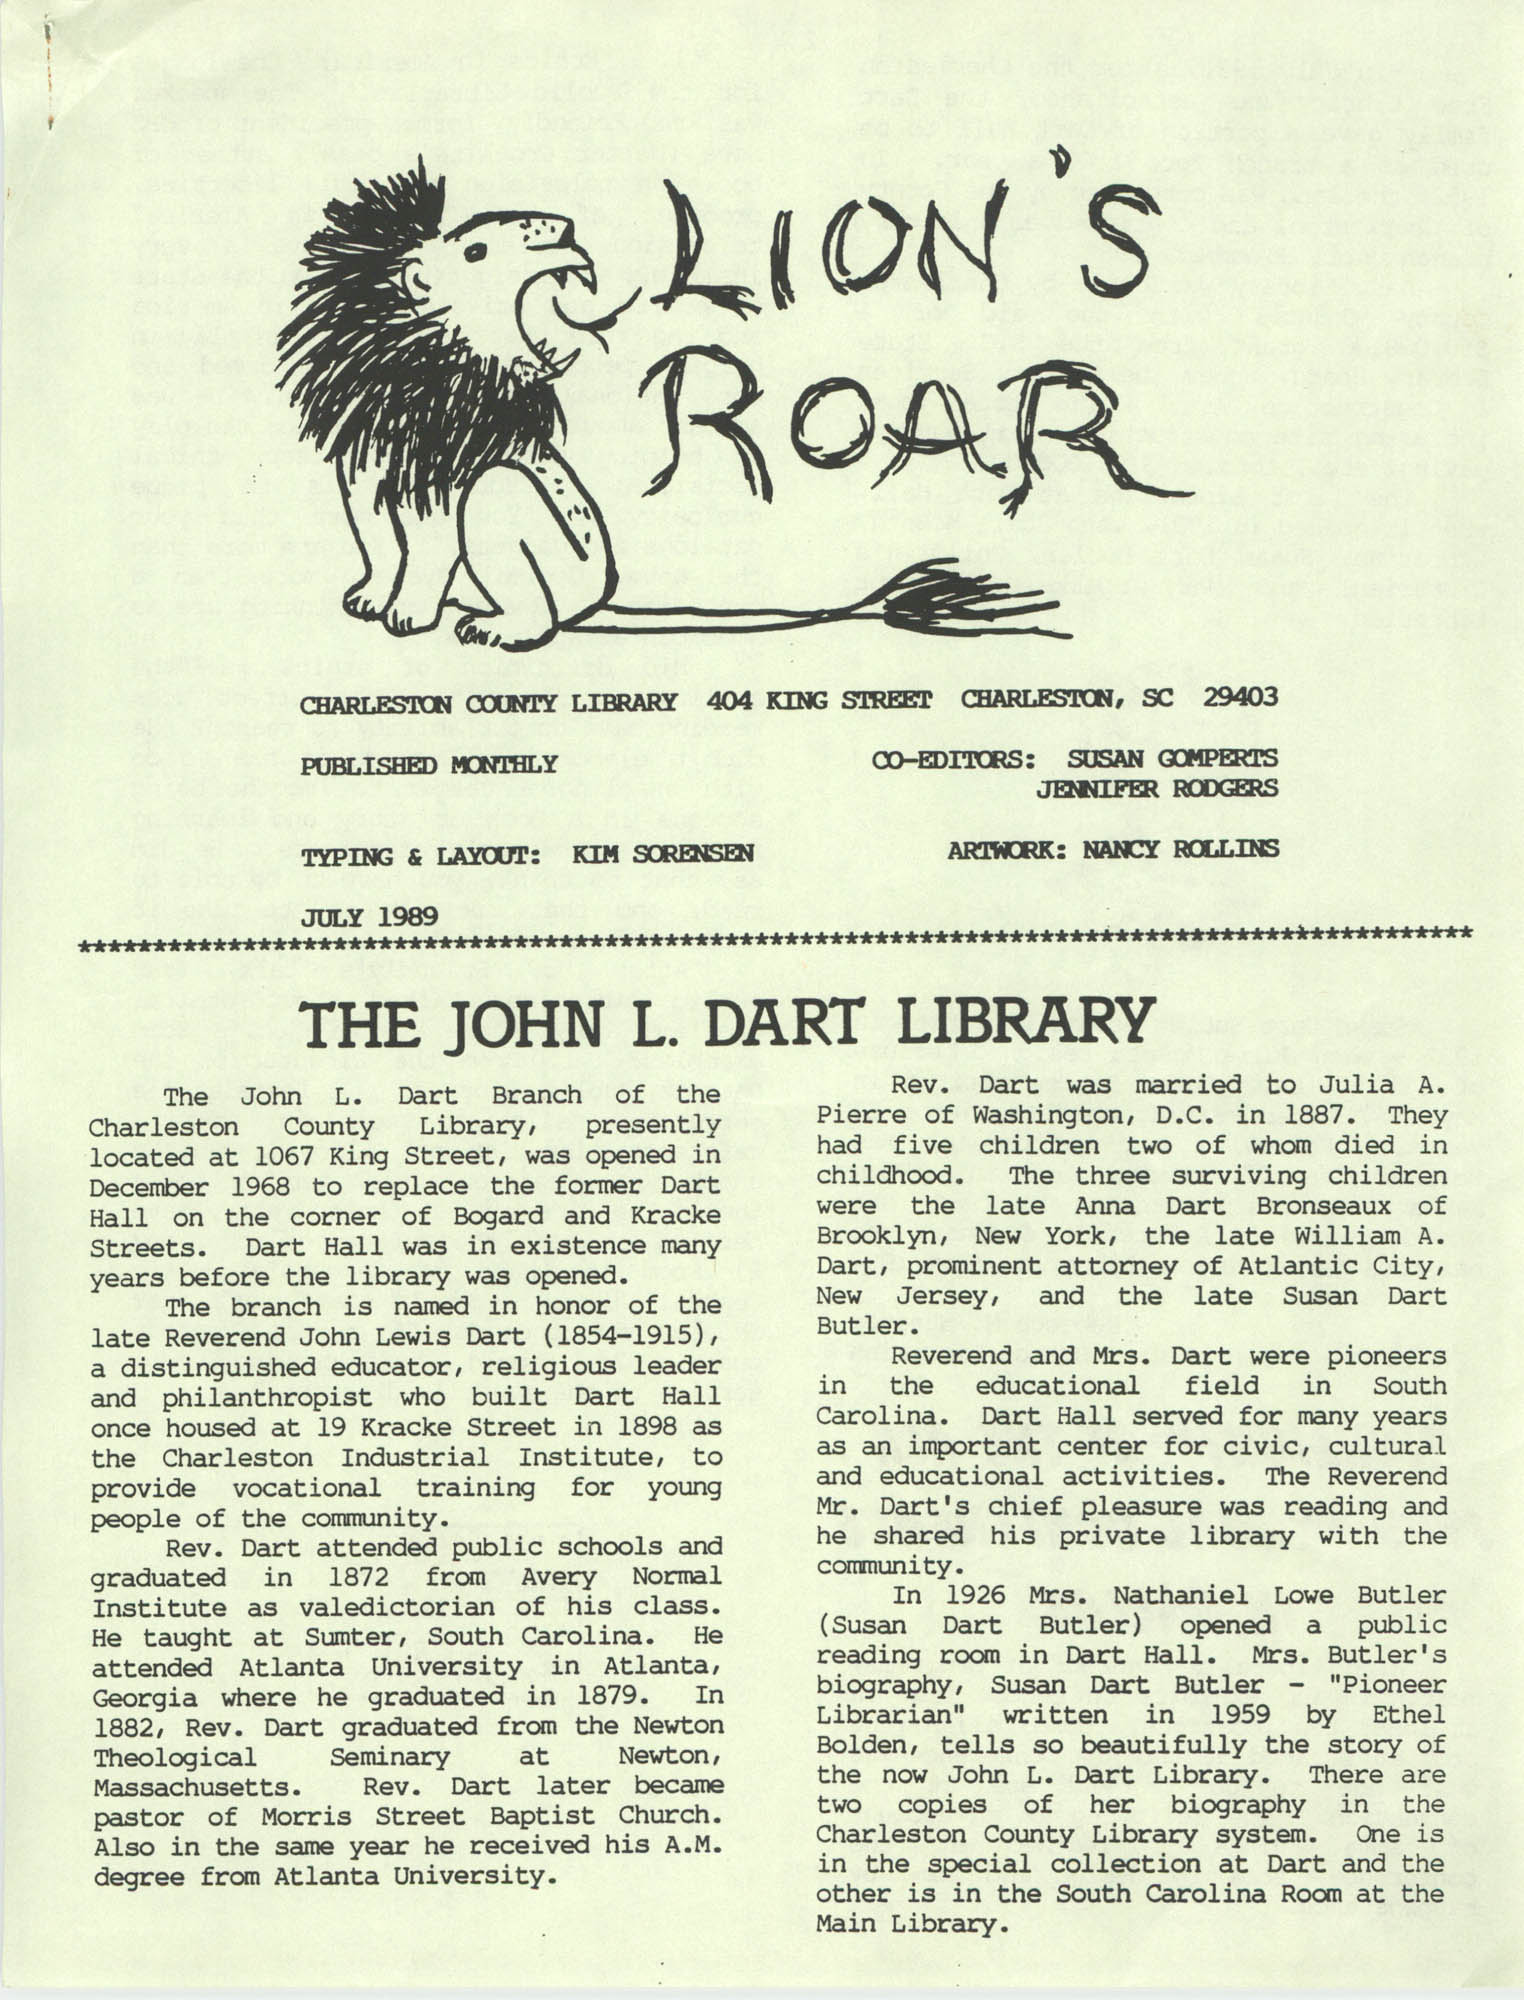 The Lion's Roar, July 1989